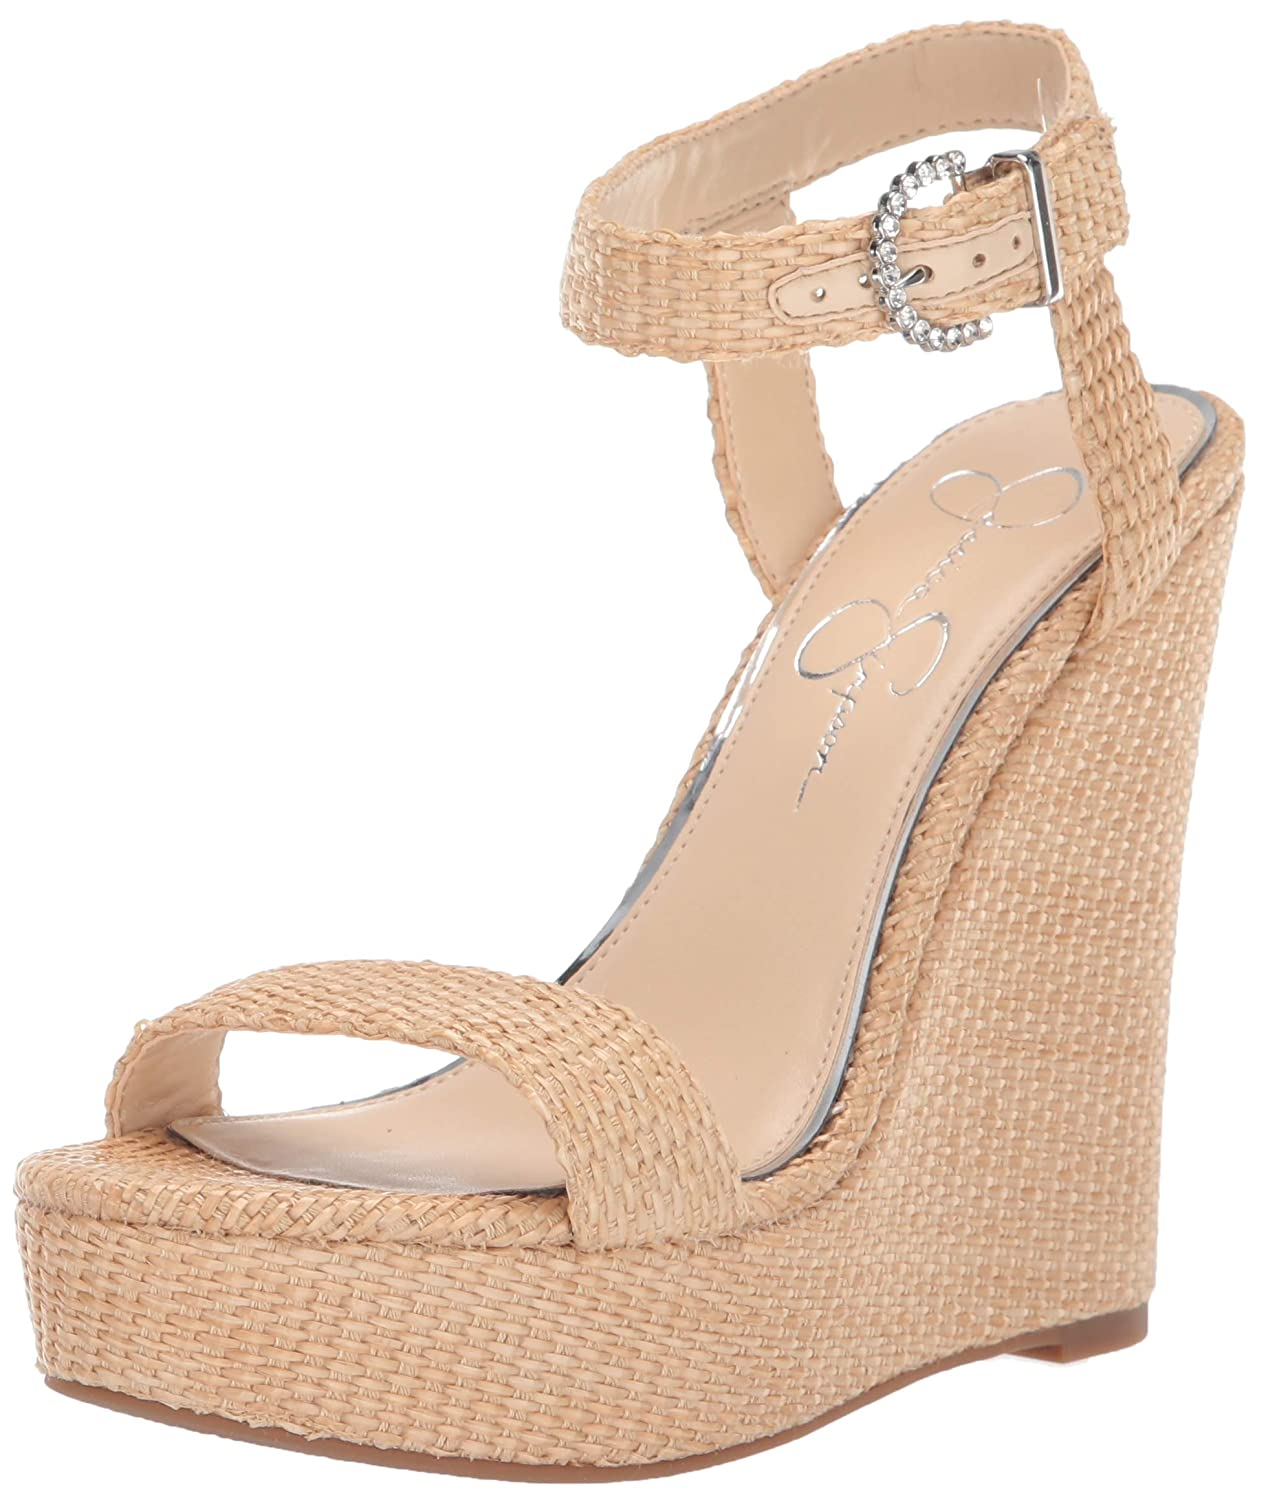 Natural Jessica Simpson Womens Taery Wedge Sandal